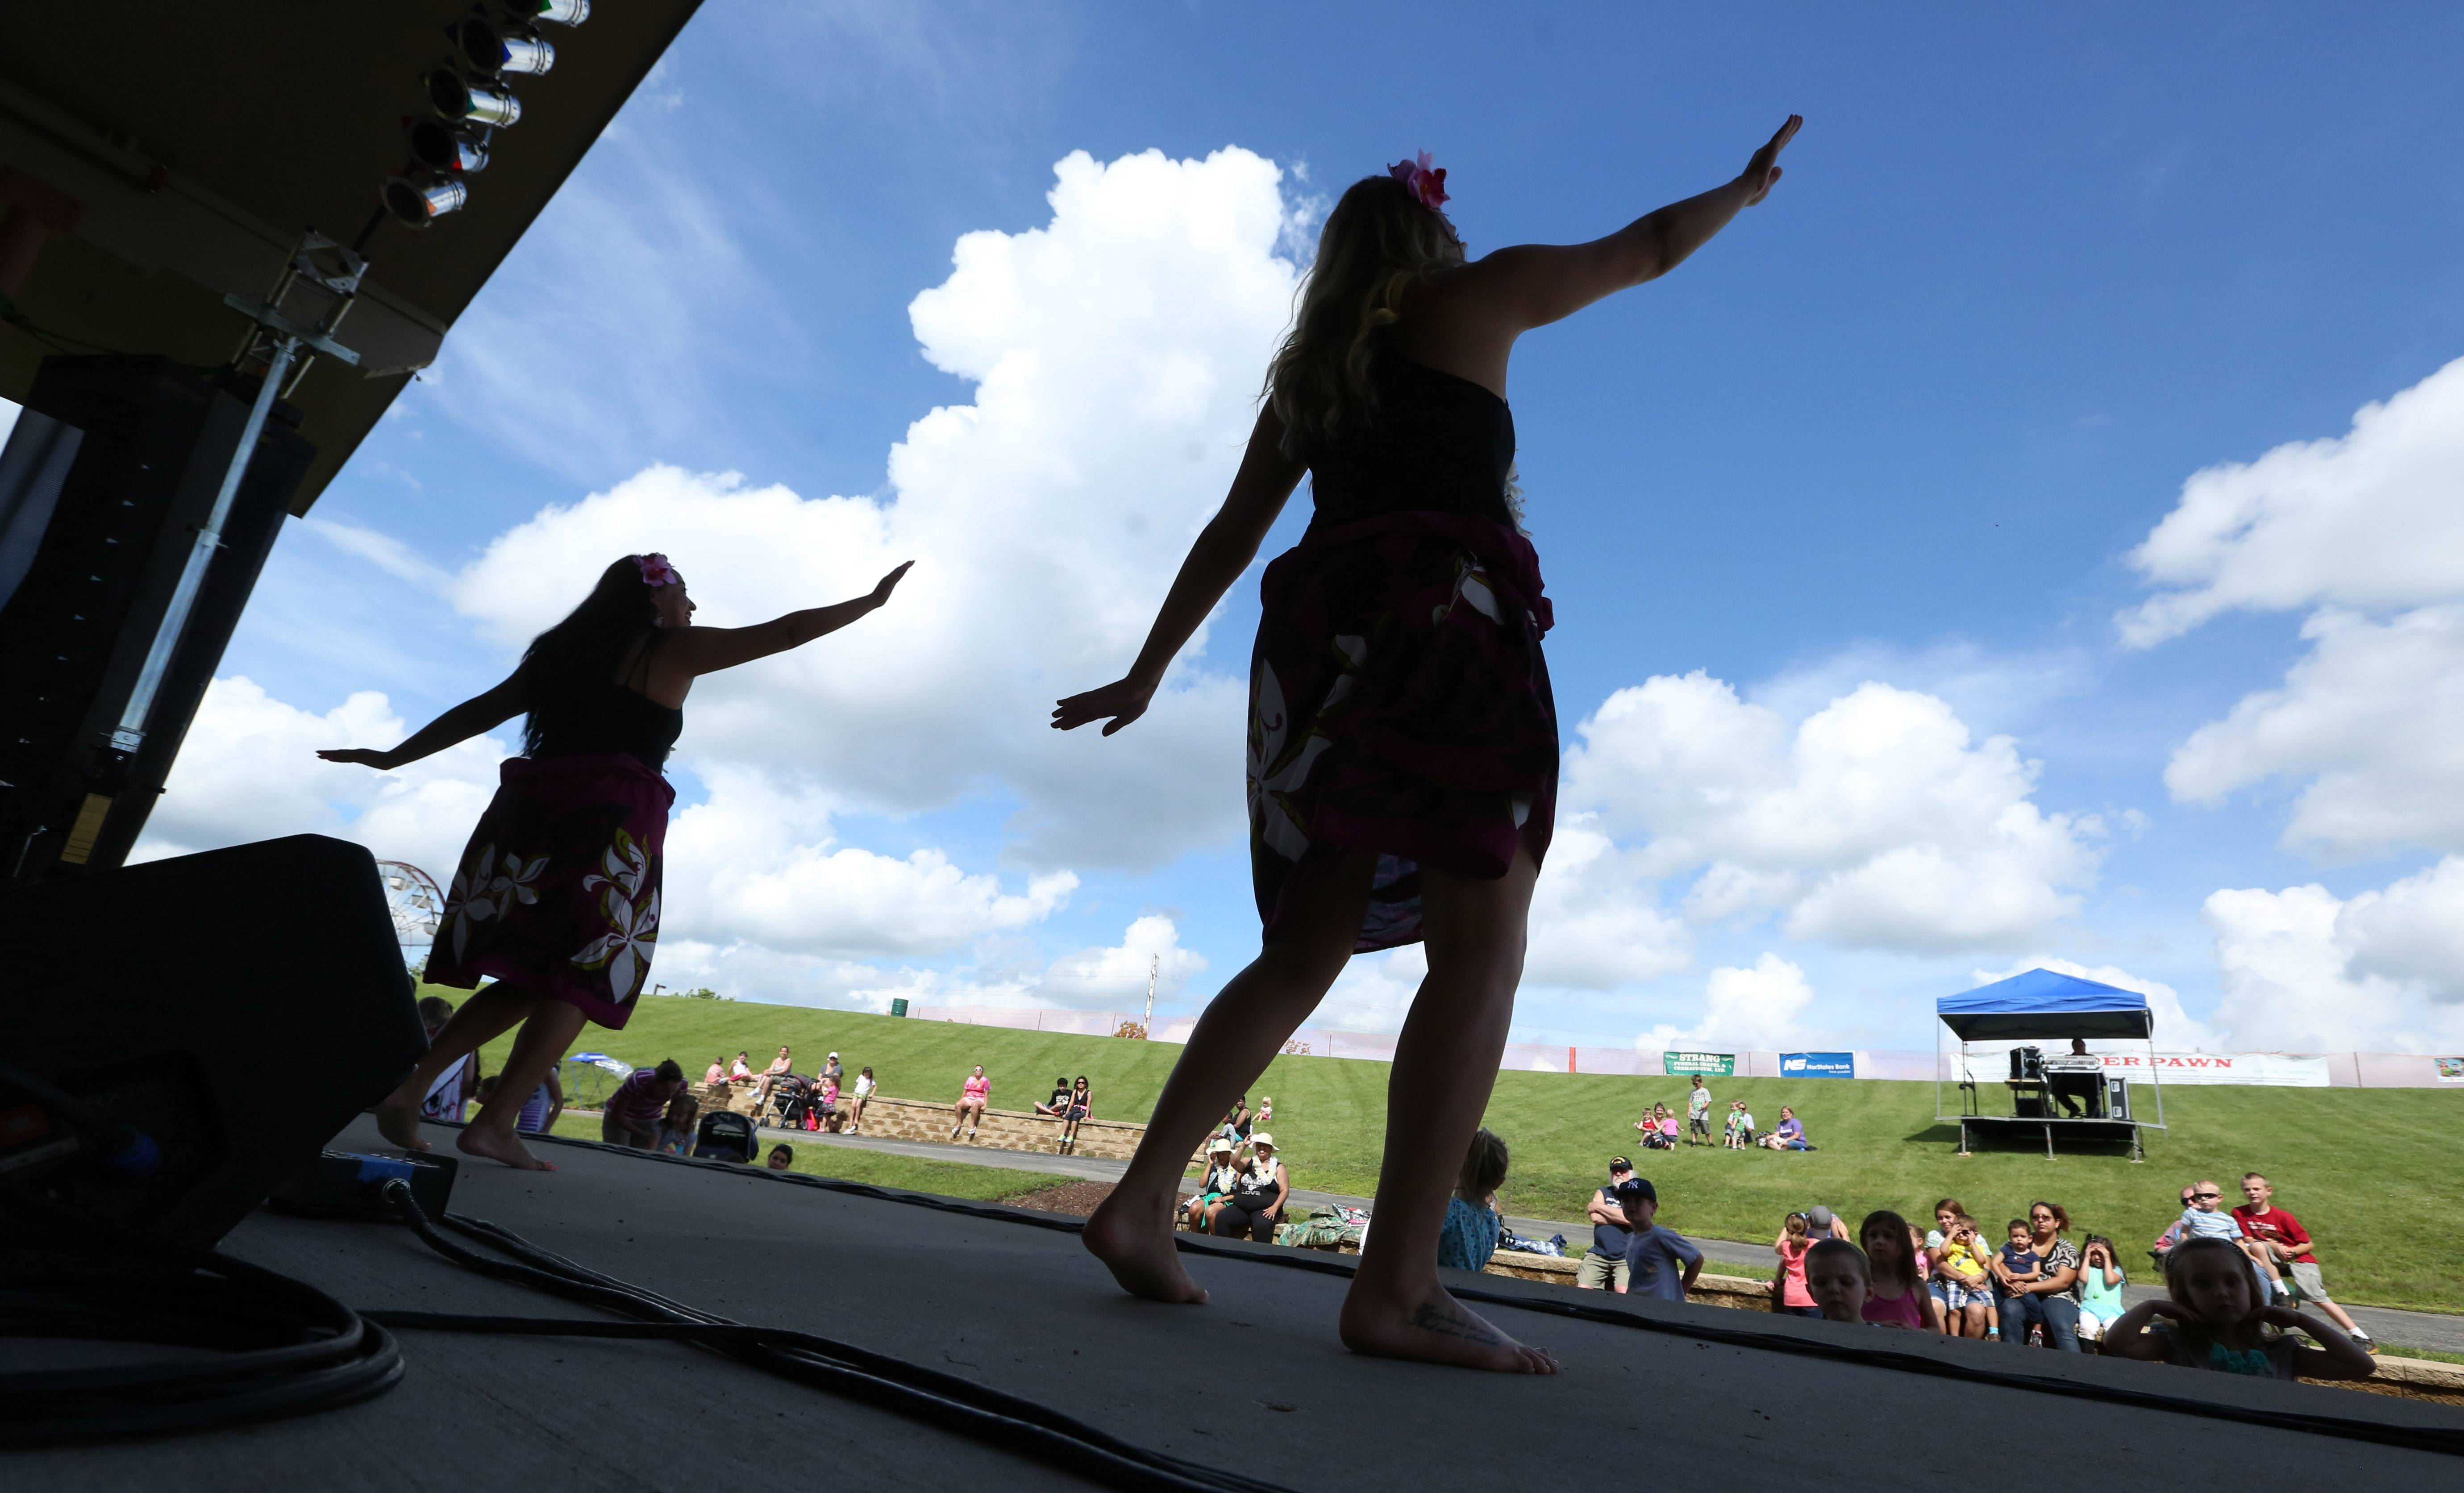 Christina Baske, of Des Plaines, right, and Kathryn Tobias, of Chicago, both with Barefoot Hawaiian in Des Plaines, perform a Polynesian dance at BeachFest on Friday in Round Lake Beach.